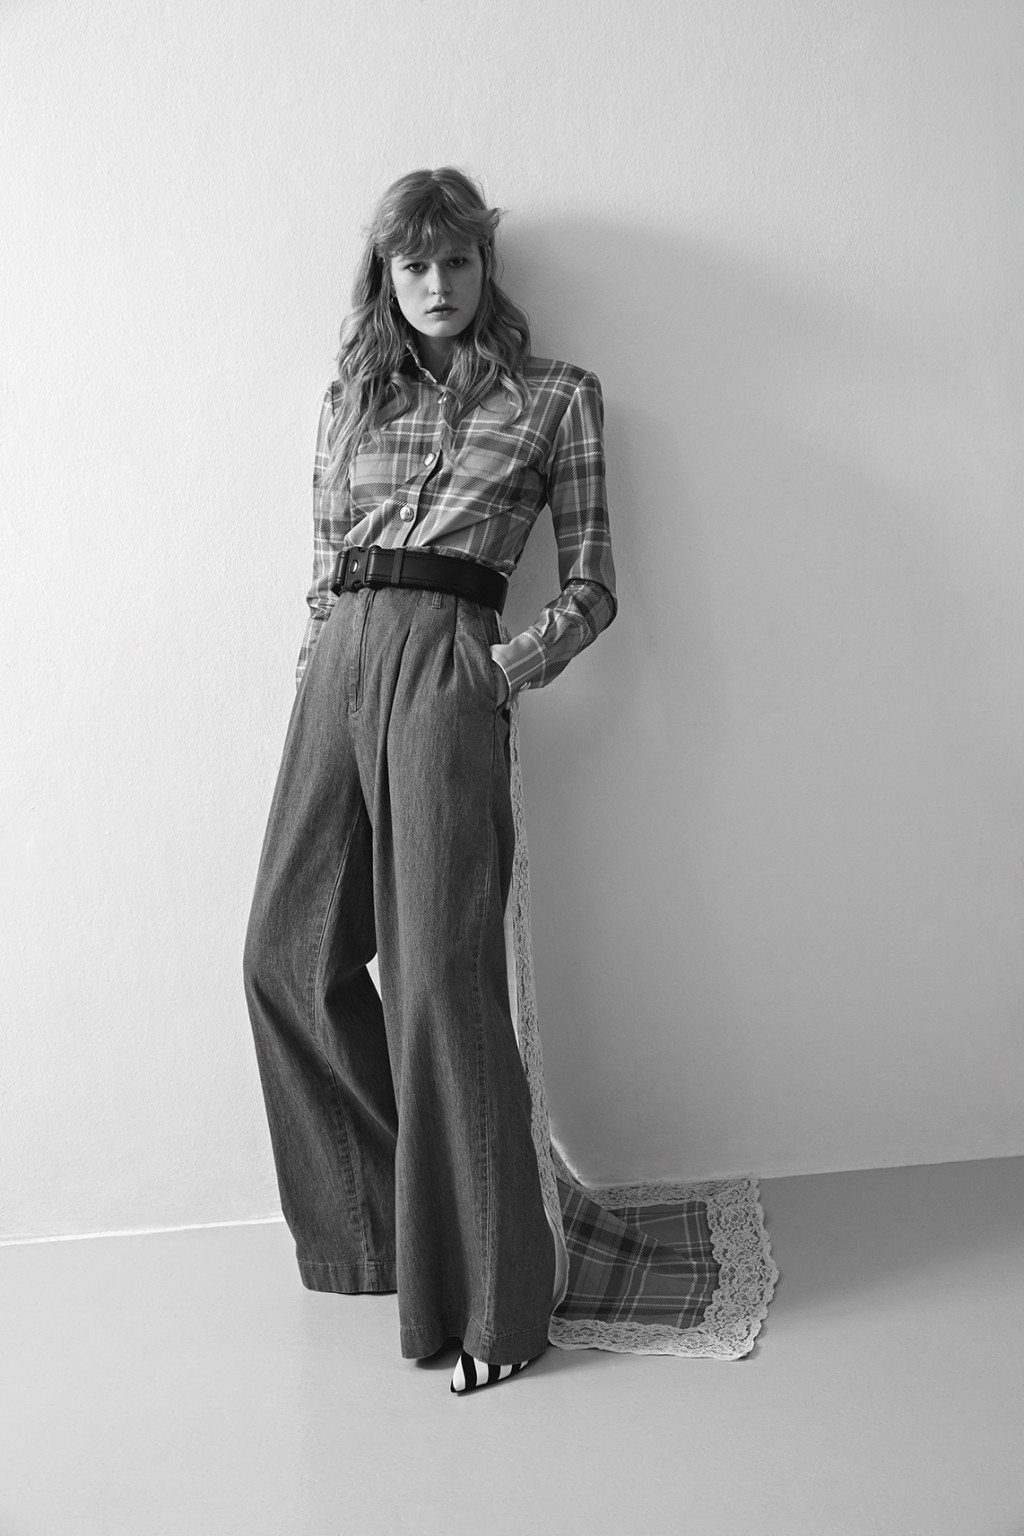 Ricarda Venjacob Styling L'Officiel